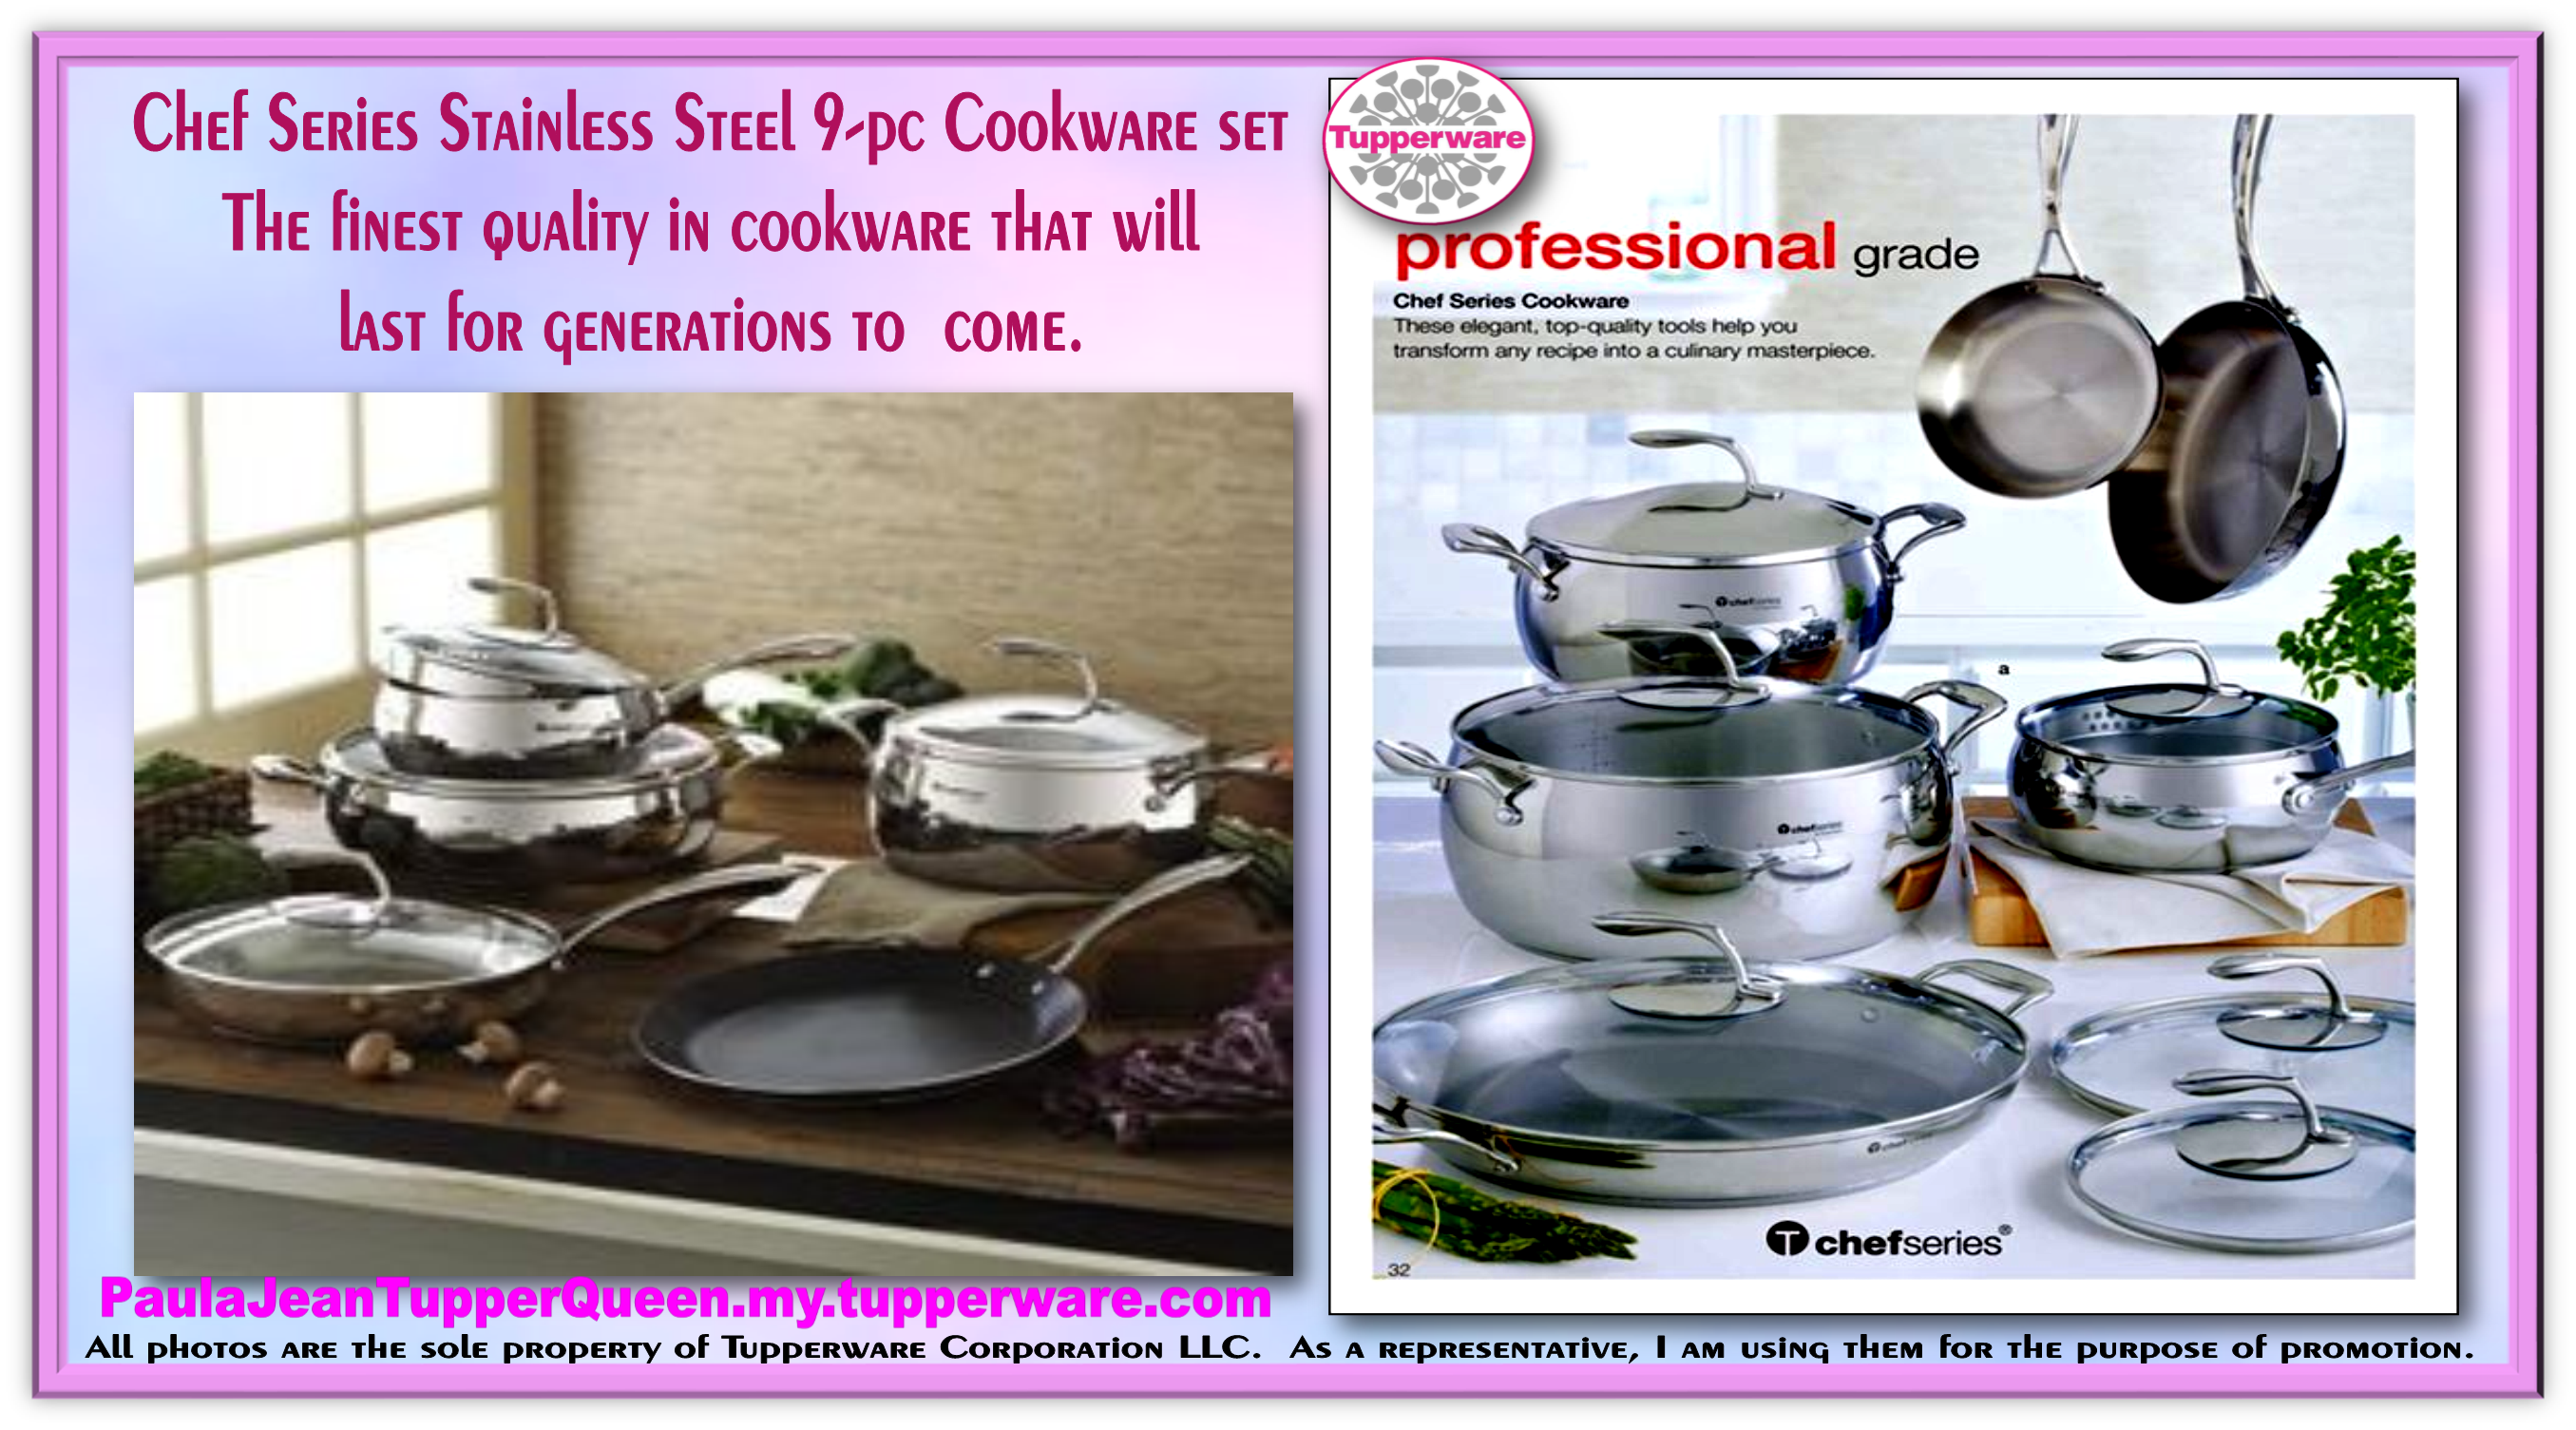 Classy Convenient Durable The New Chef Series 9 Pc Cookware Set Tupperware Tchef Fry Pan From